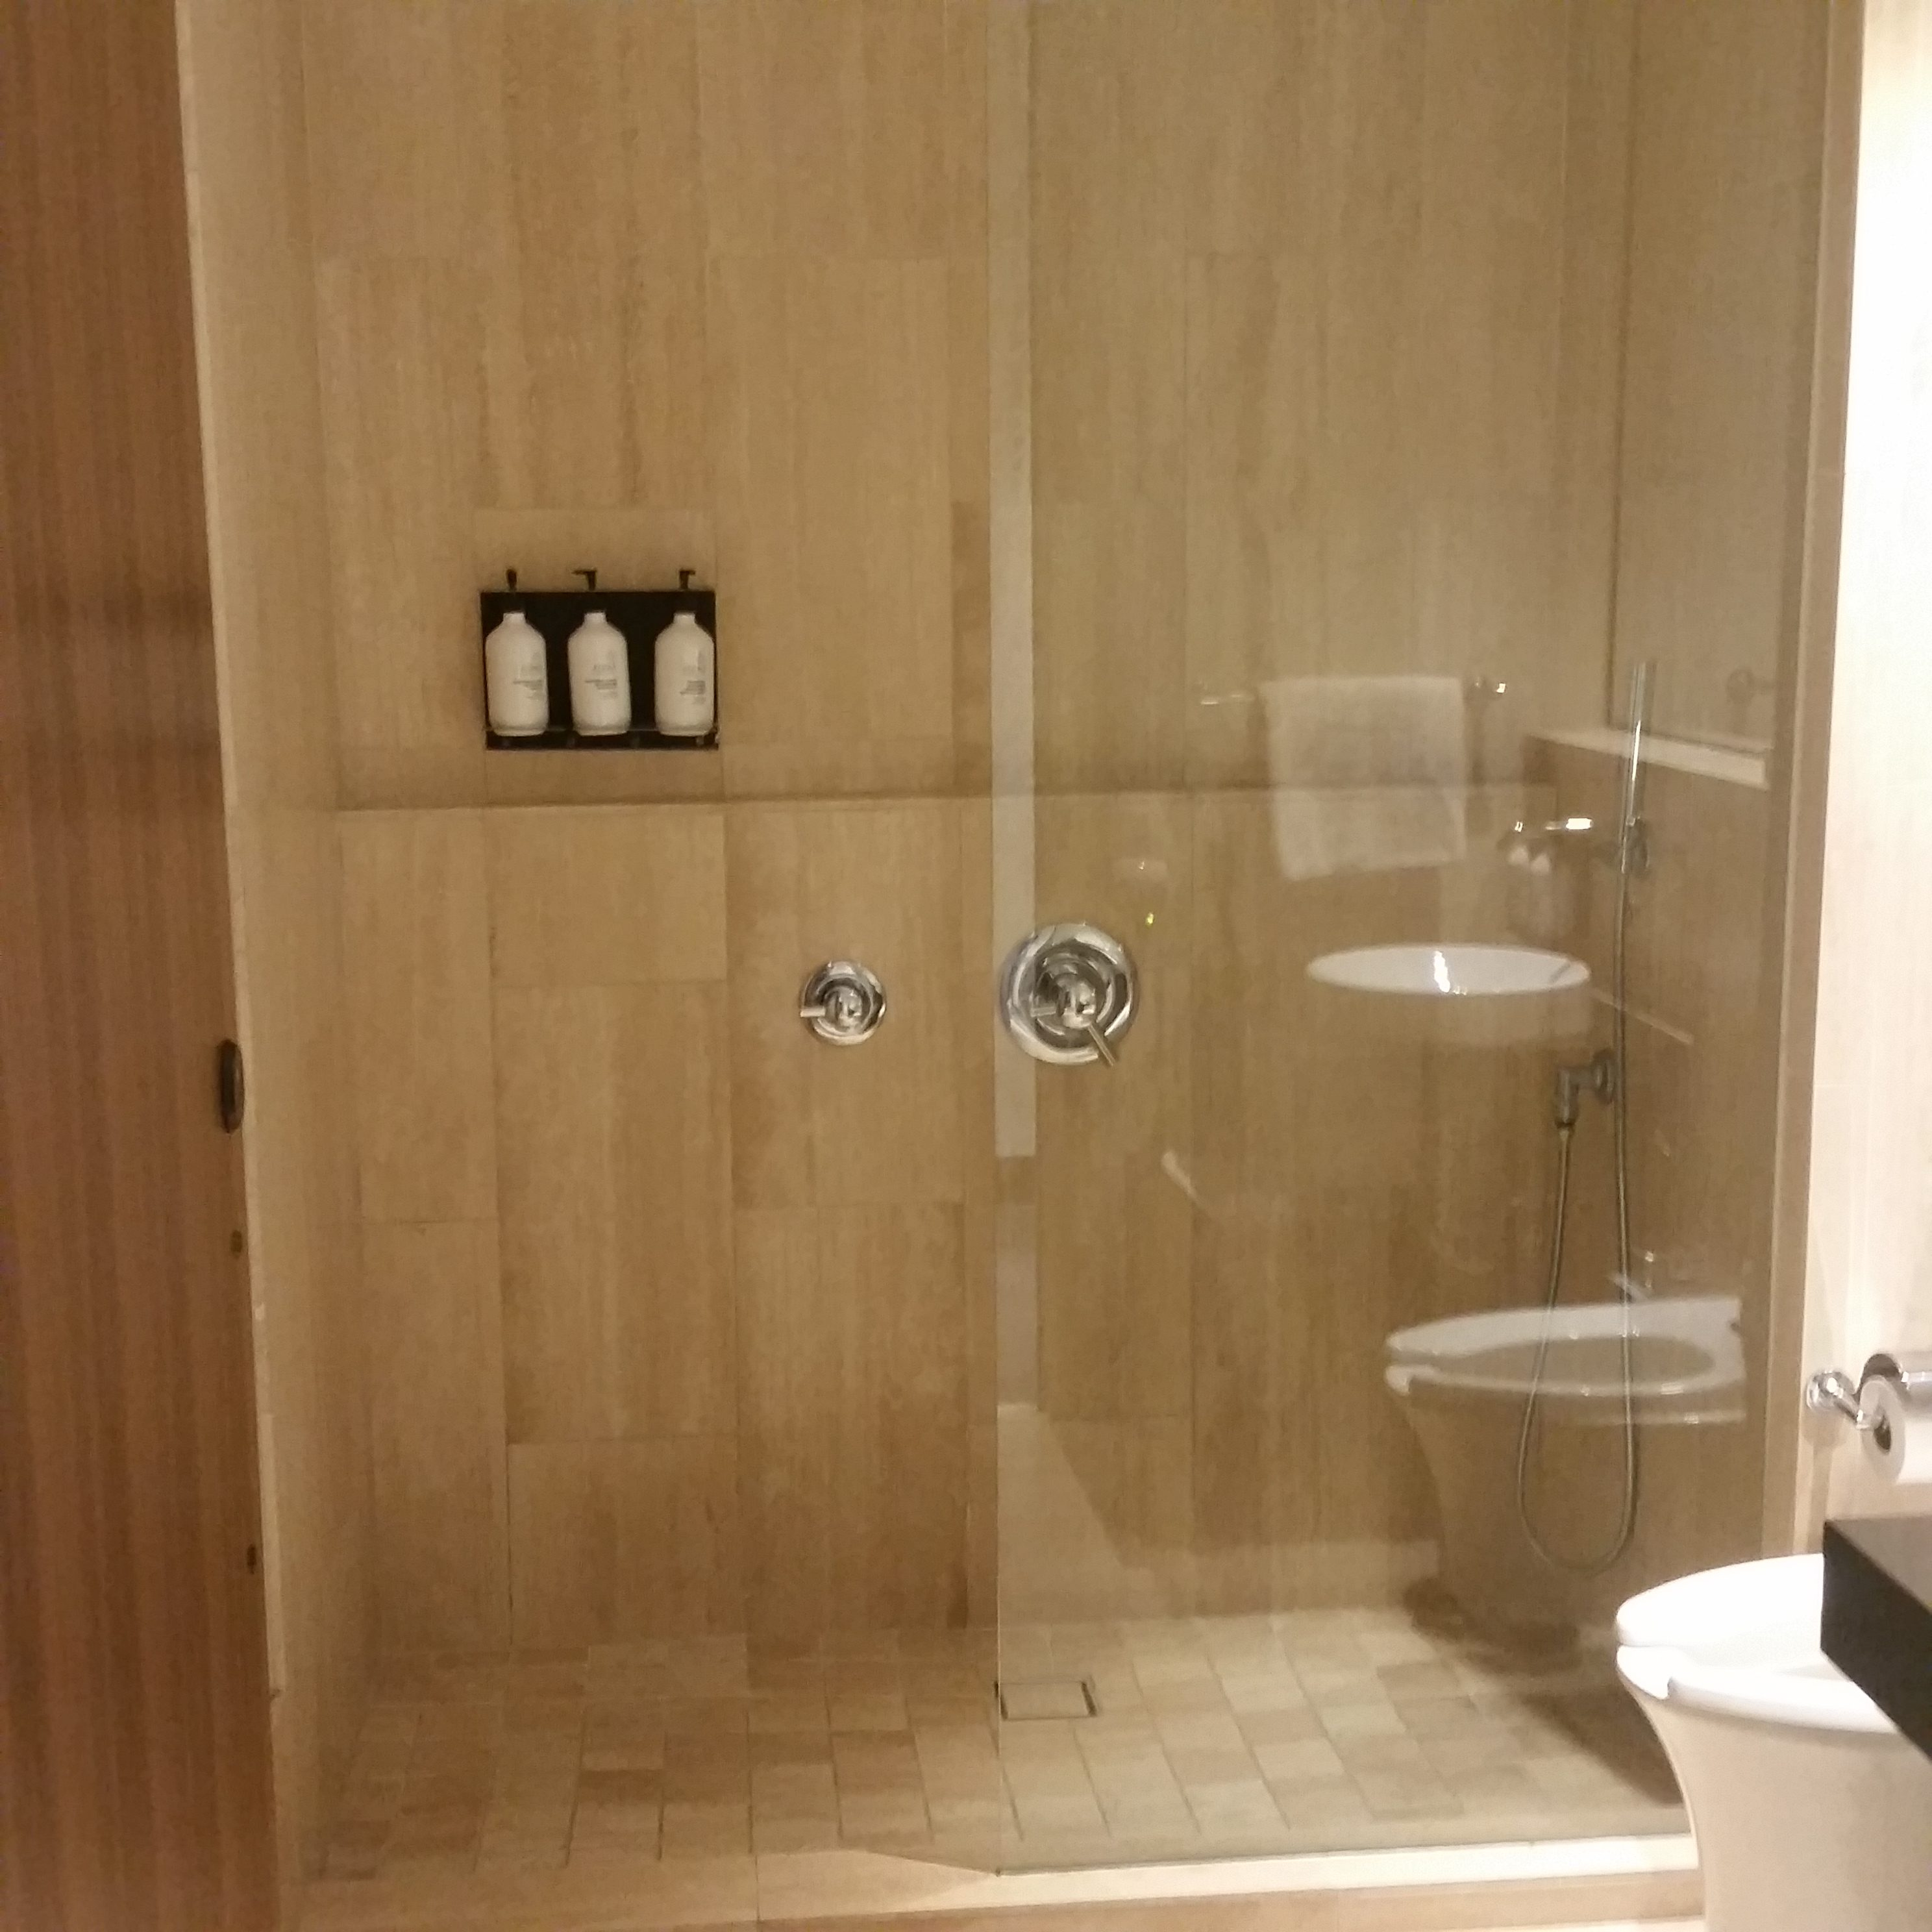 Qantas LAX Lounge shower